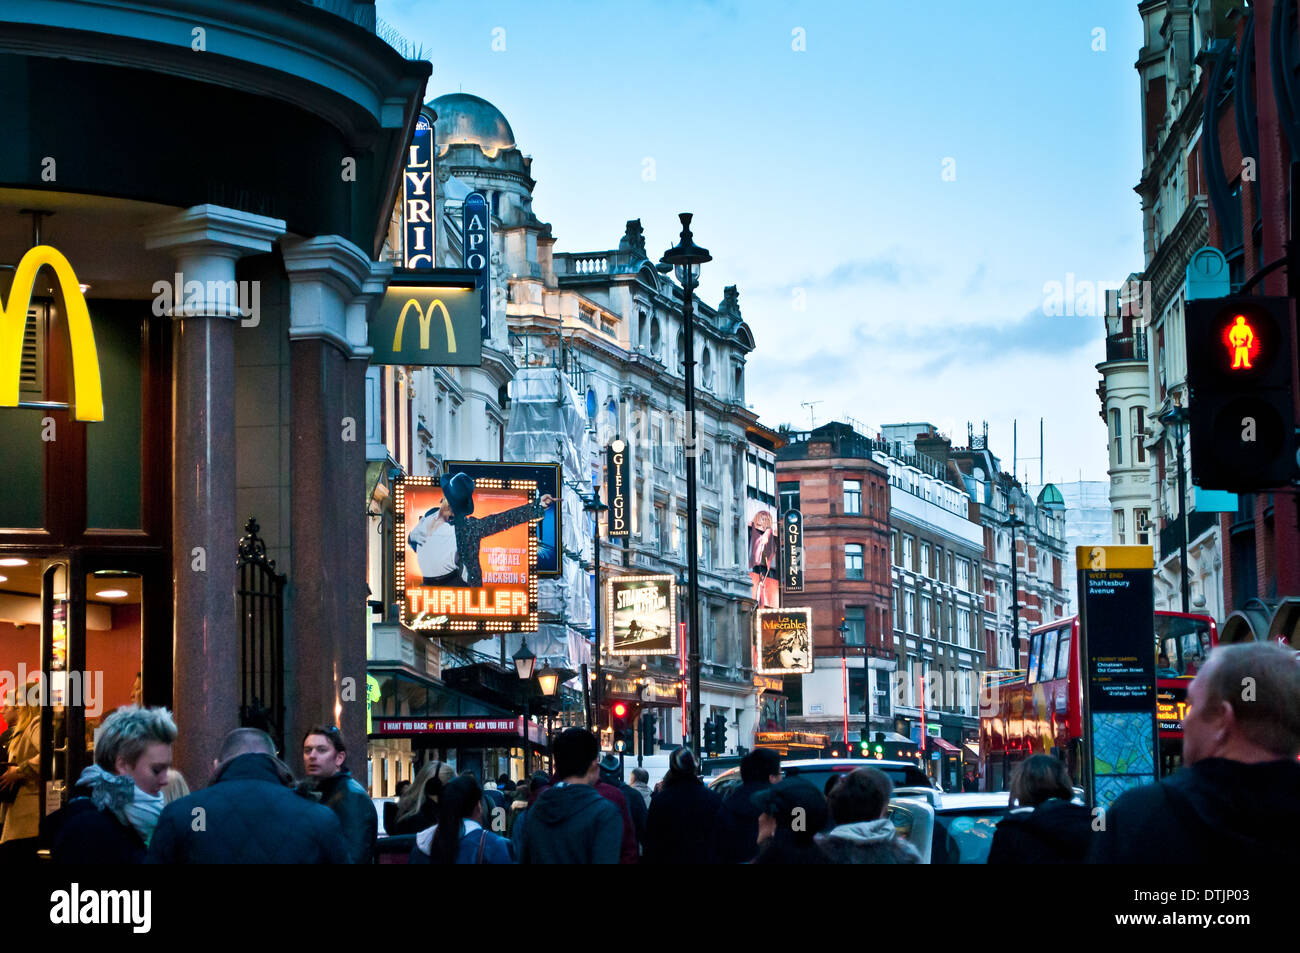 Shaftesbury Avenue with several theatres, London, WC2, UK - Stock Image